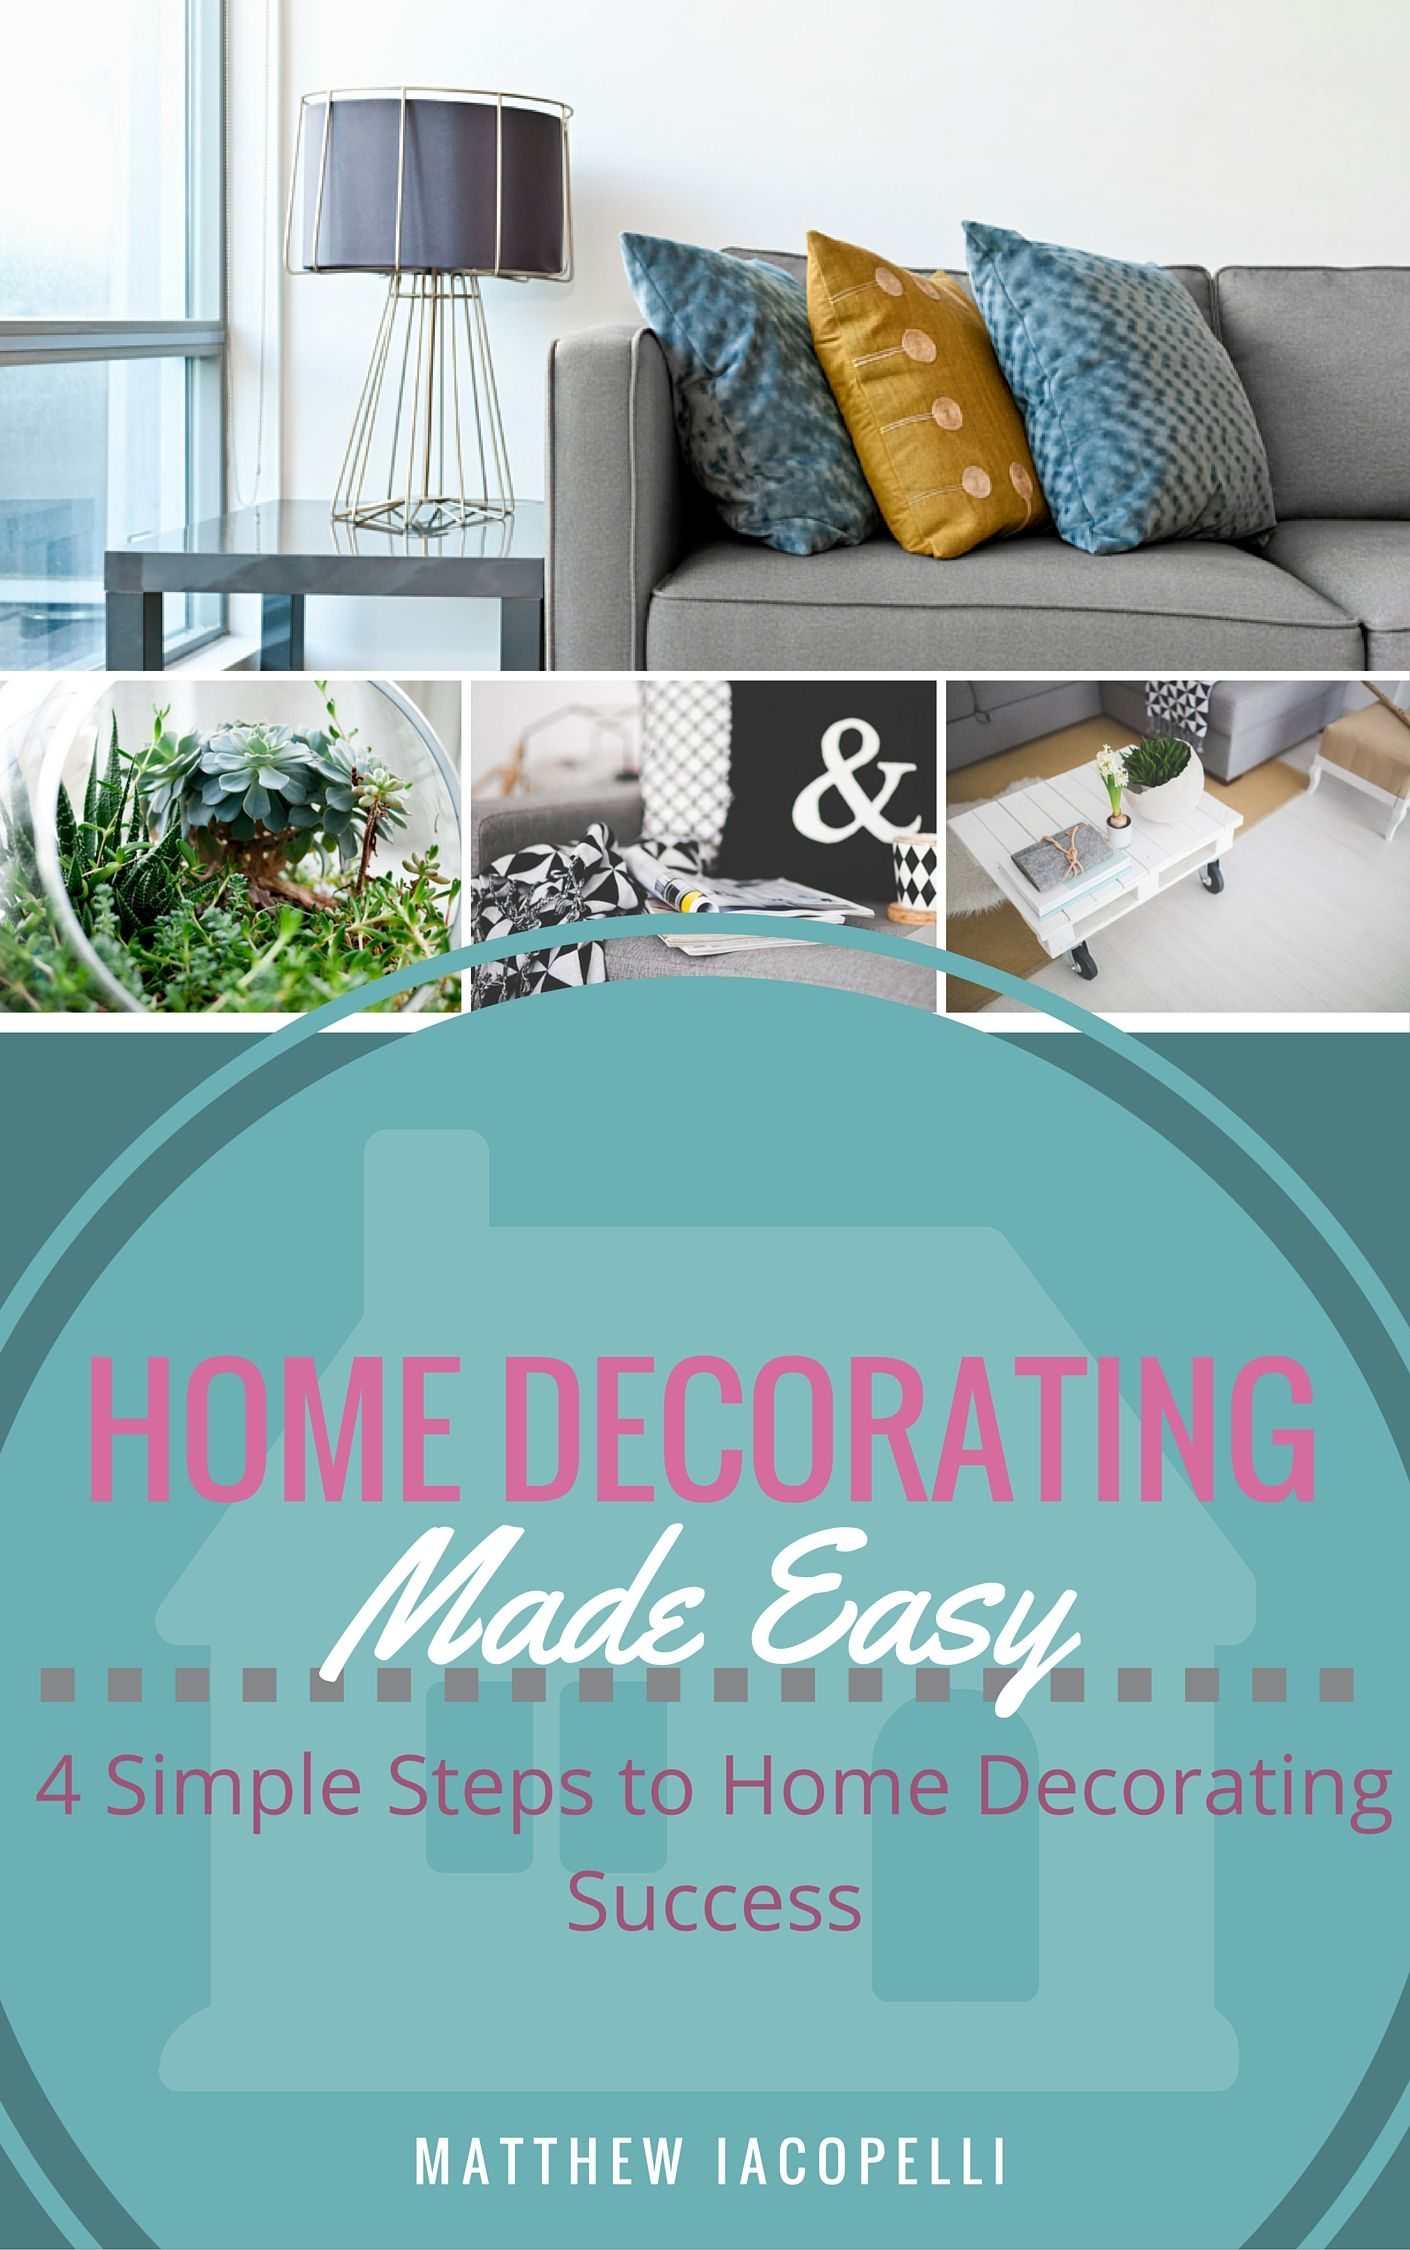 Home Decorating Made Simple | Decorating and DIY decorating